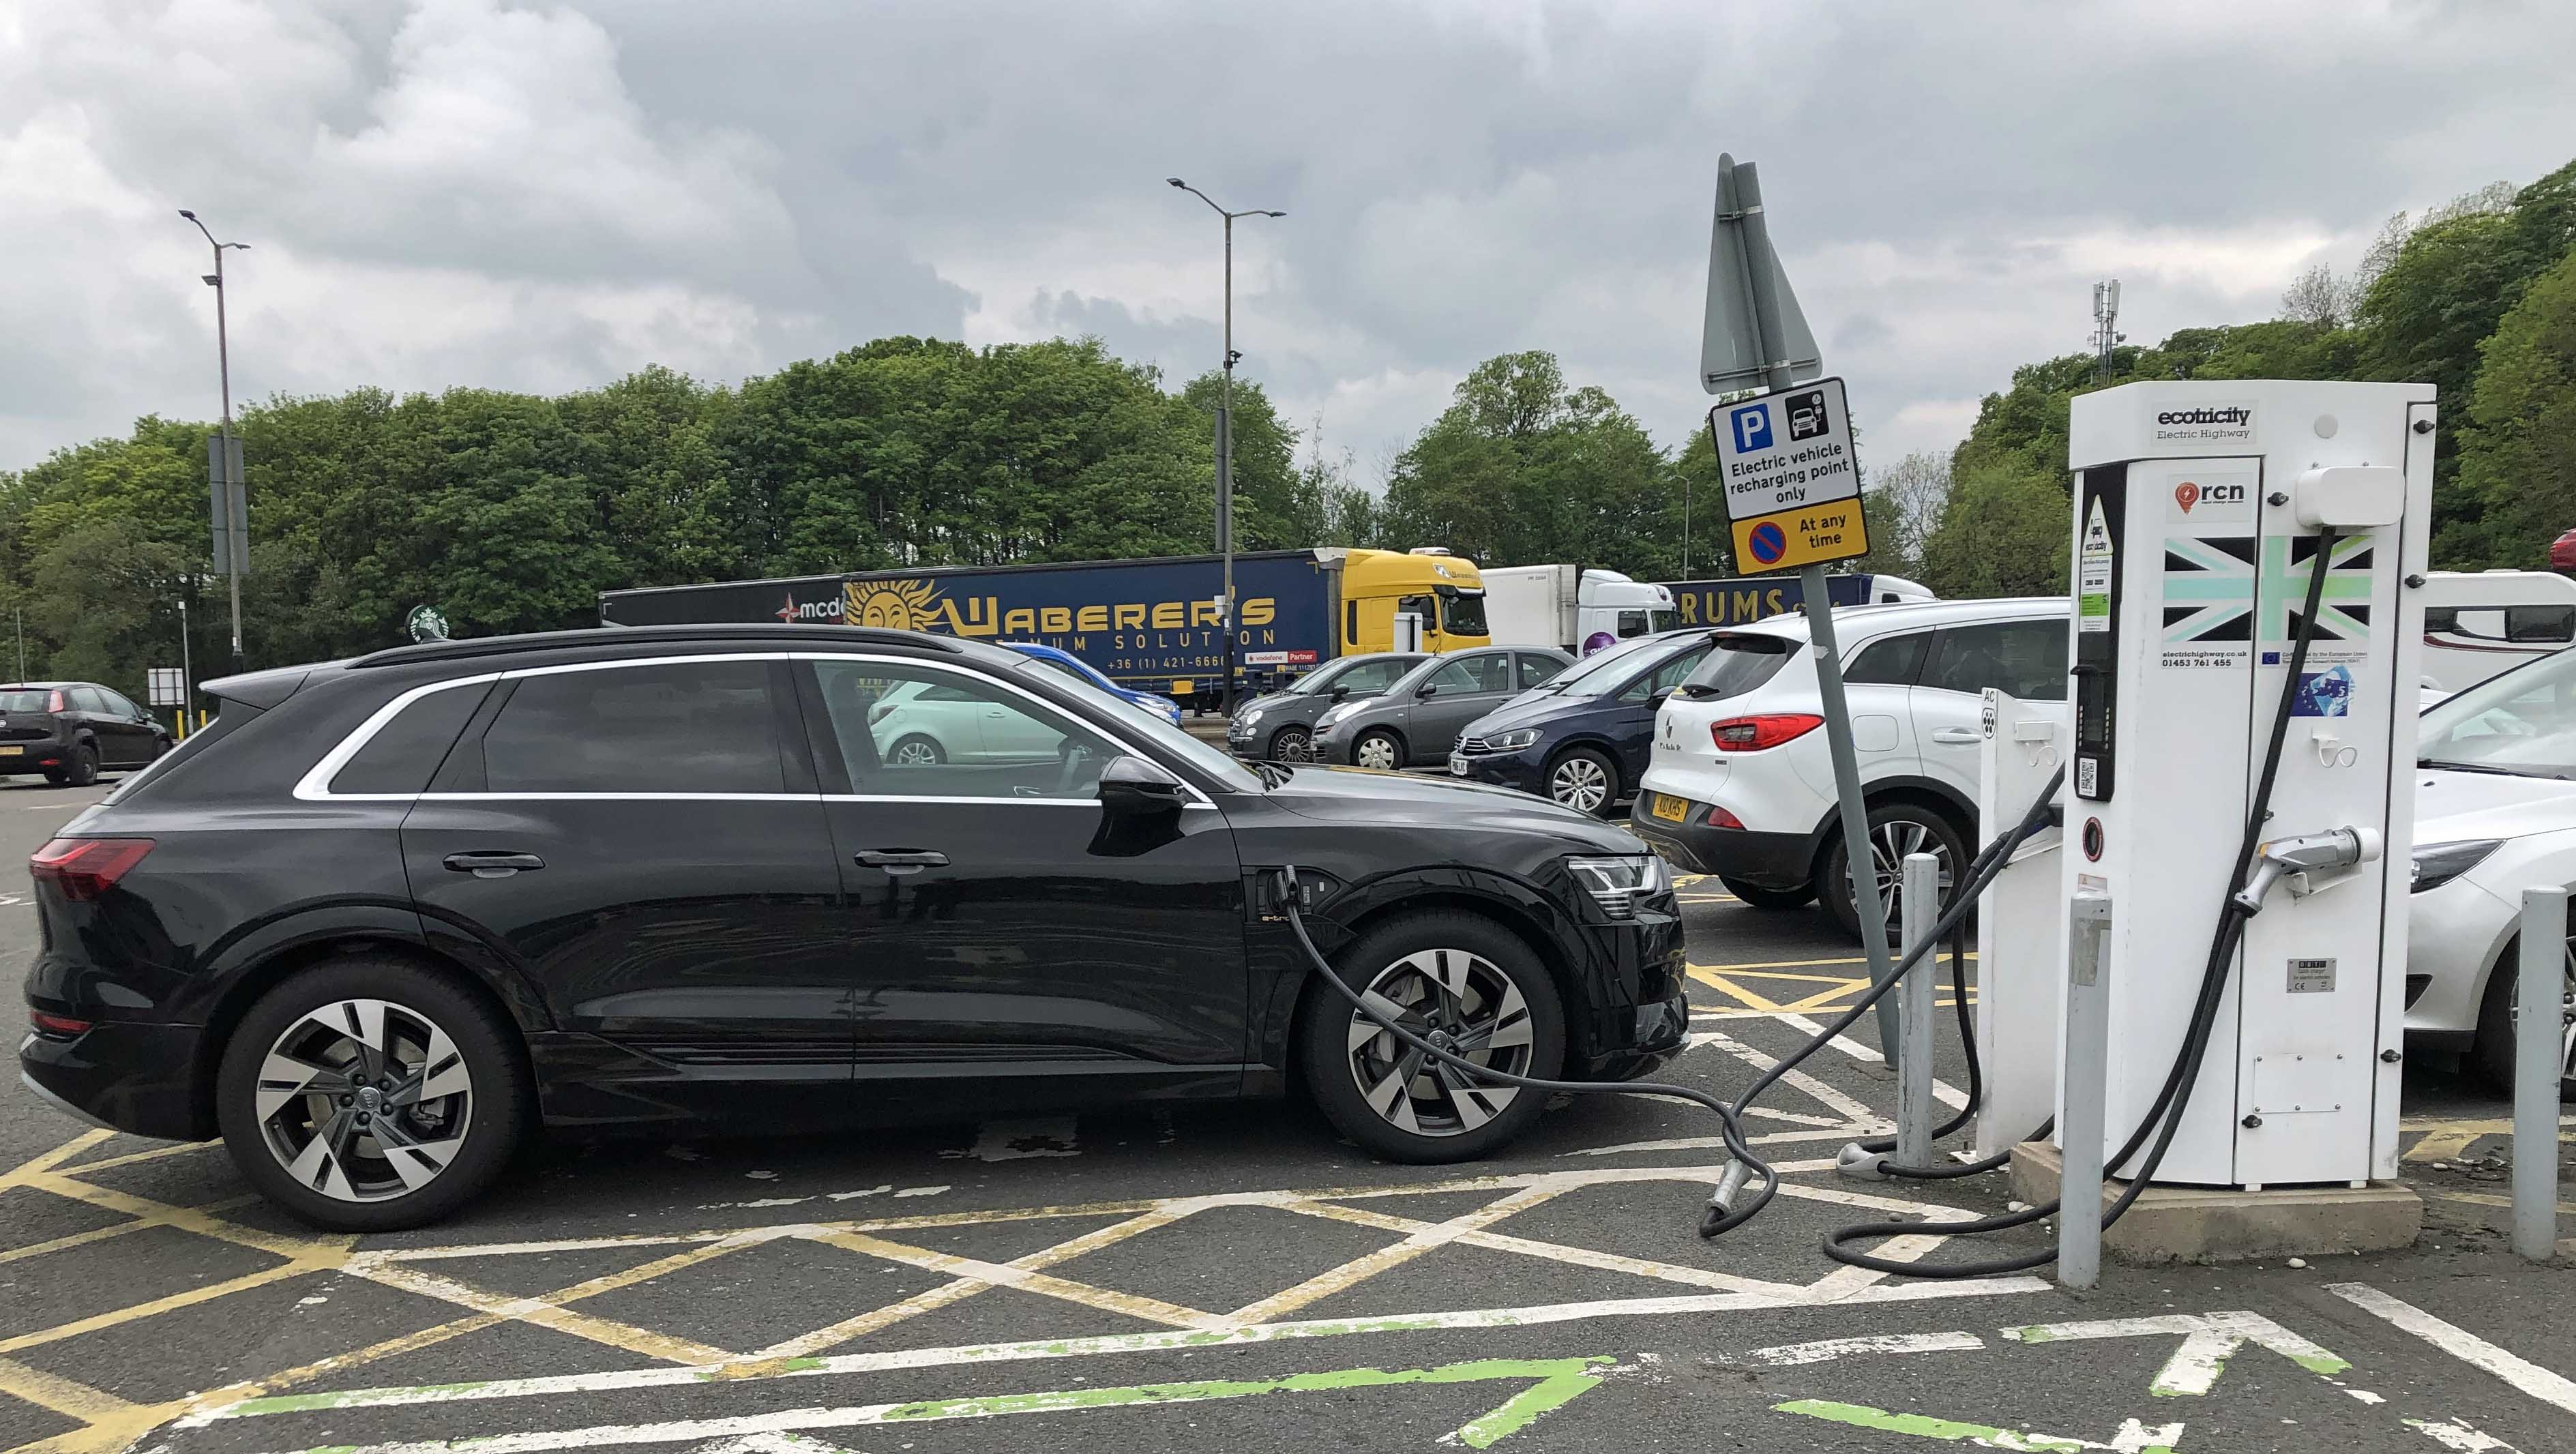 Charging at an Ecotricity pump in Keele, England